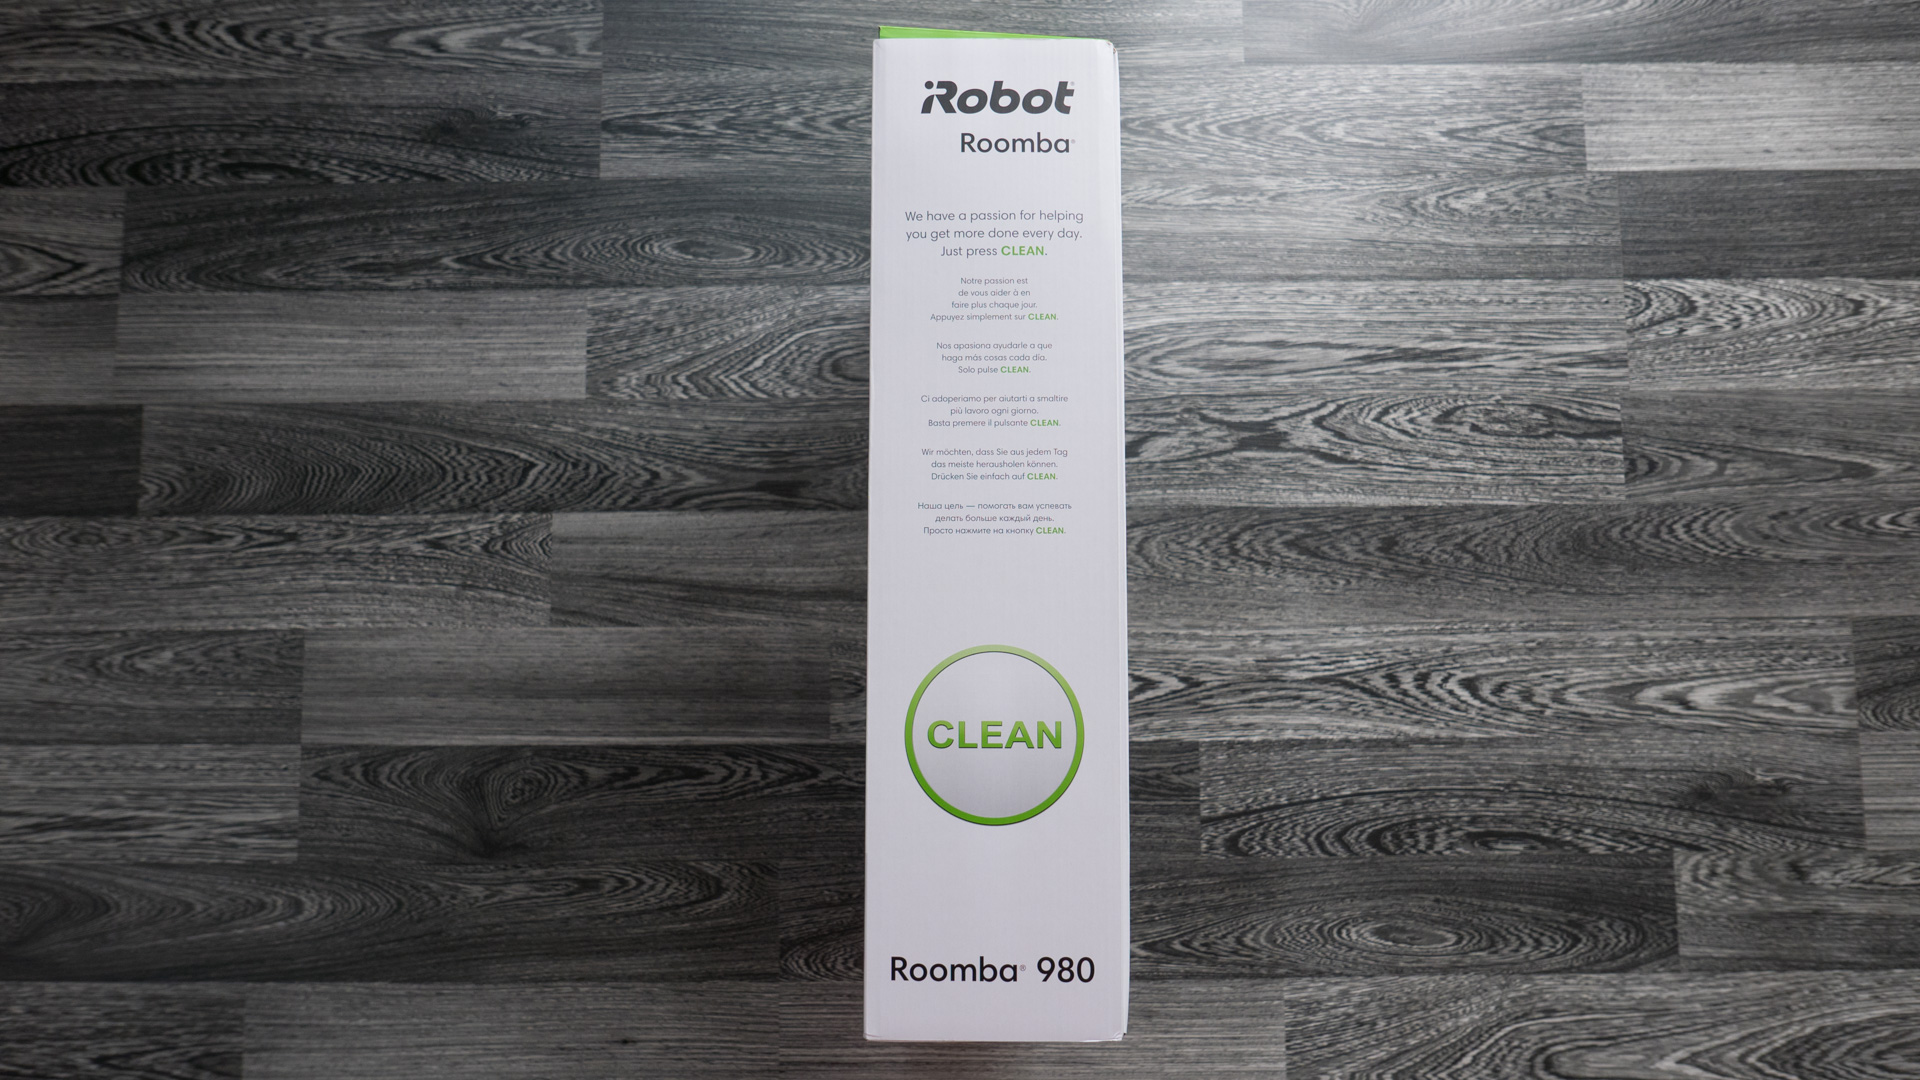 iRobot Roomba 980 Unboxing 06